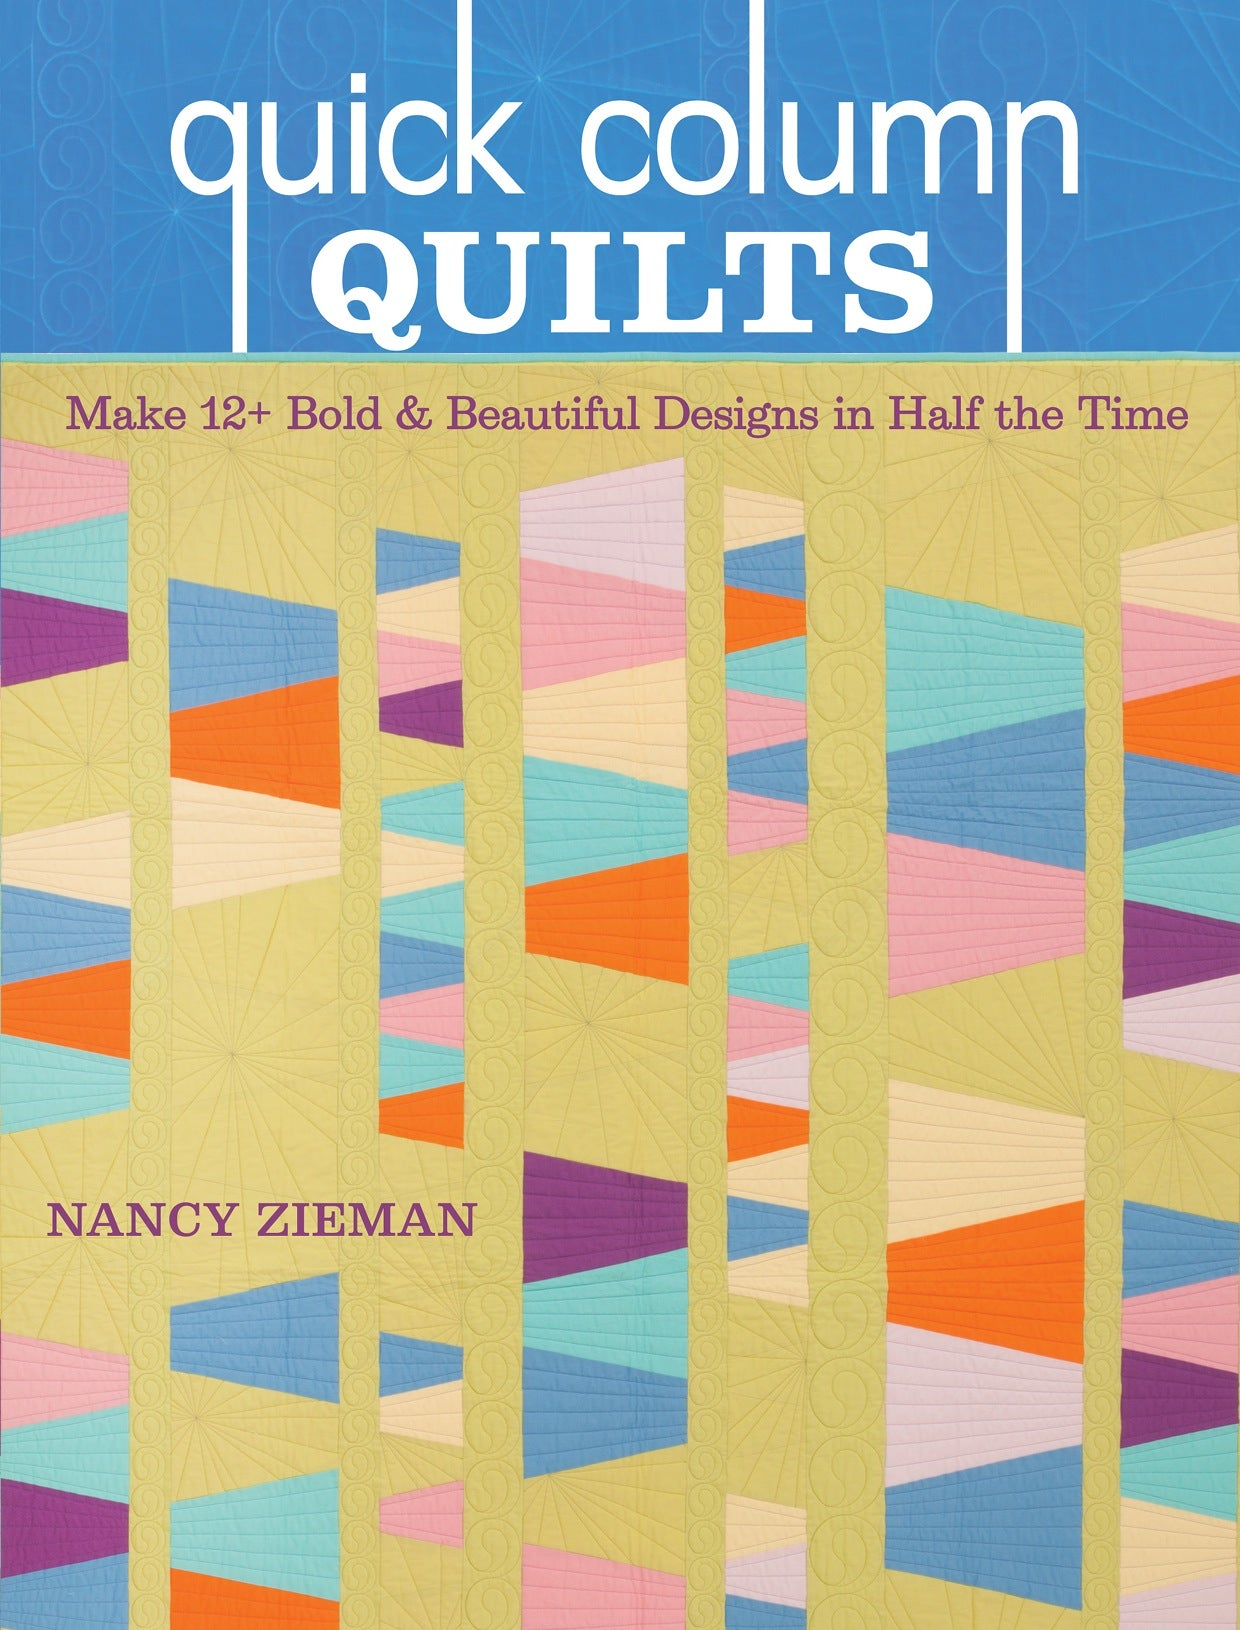 QuickColumnQuilts_cover